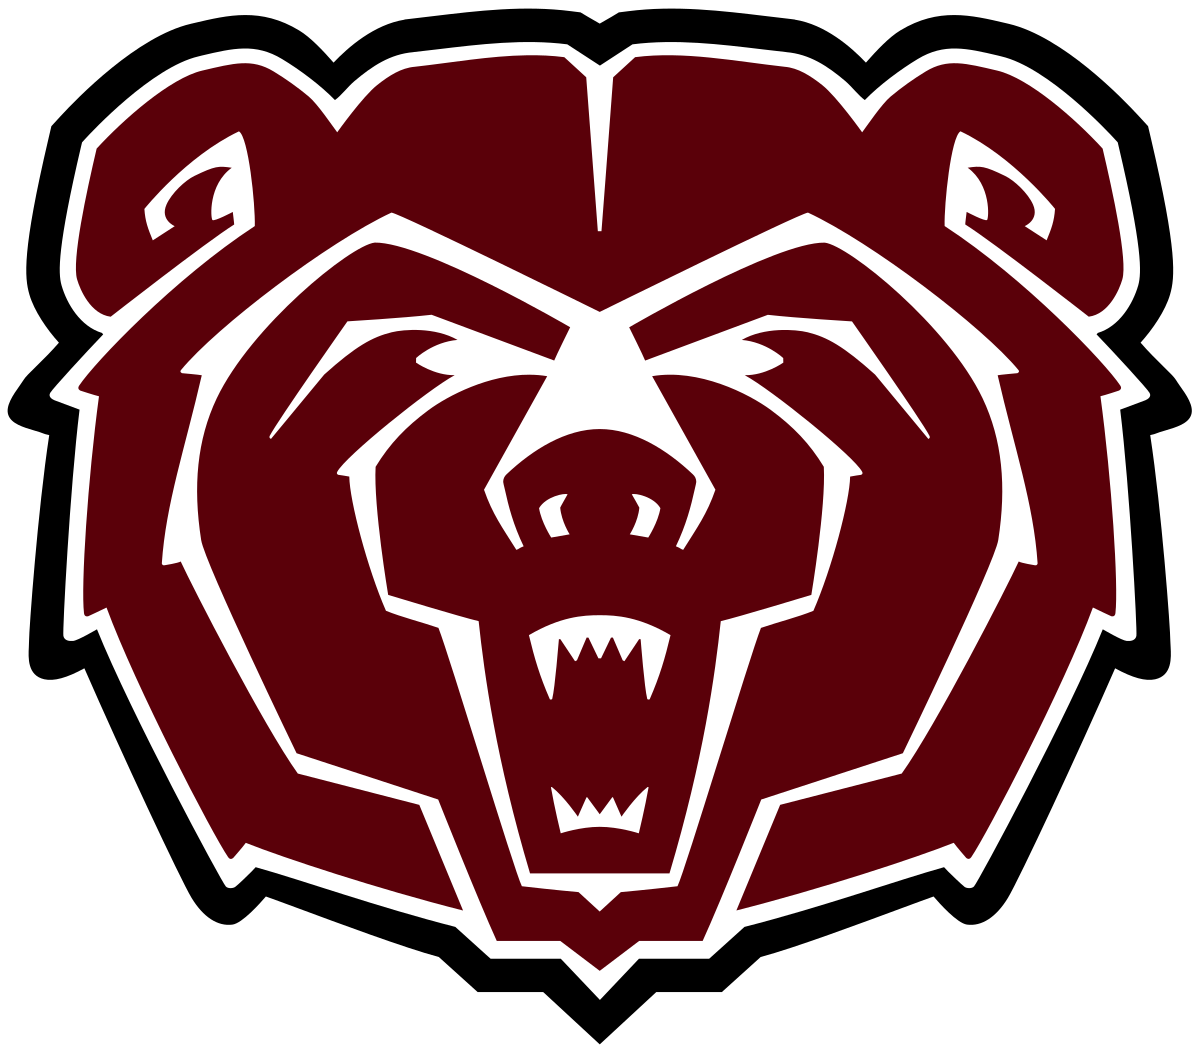 Twin valley football clipart svg black and white stock Missouri State Bears and Lady Bears - Wikipedia svg black and white stock